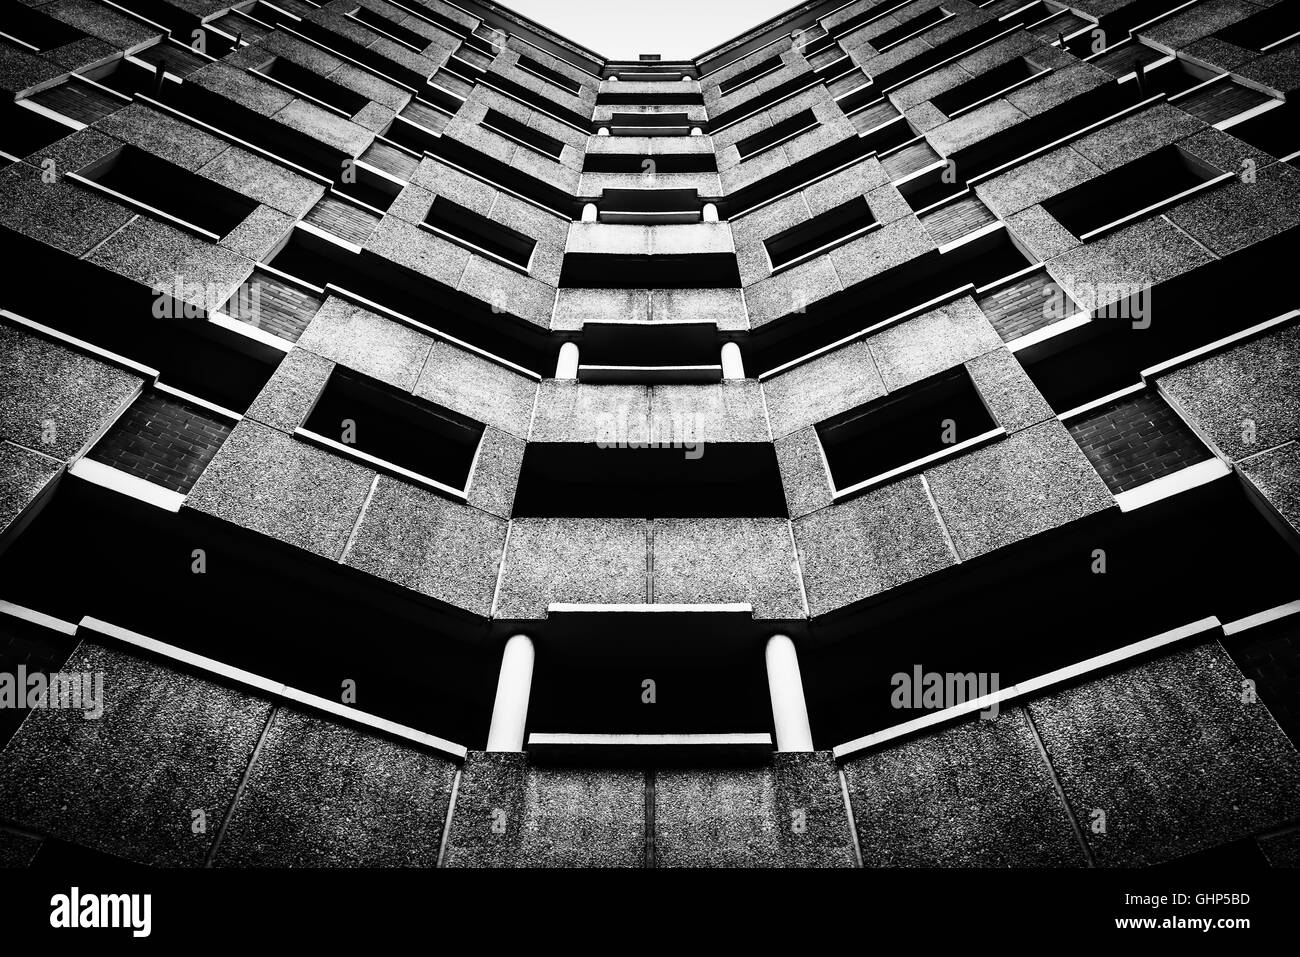 Edifice of a residential building in East London, London, United Kingdom - Stock Image